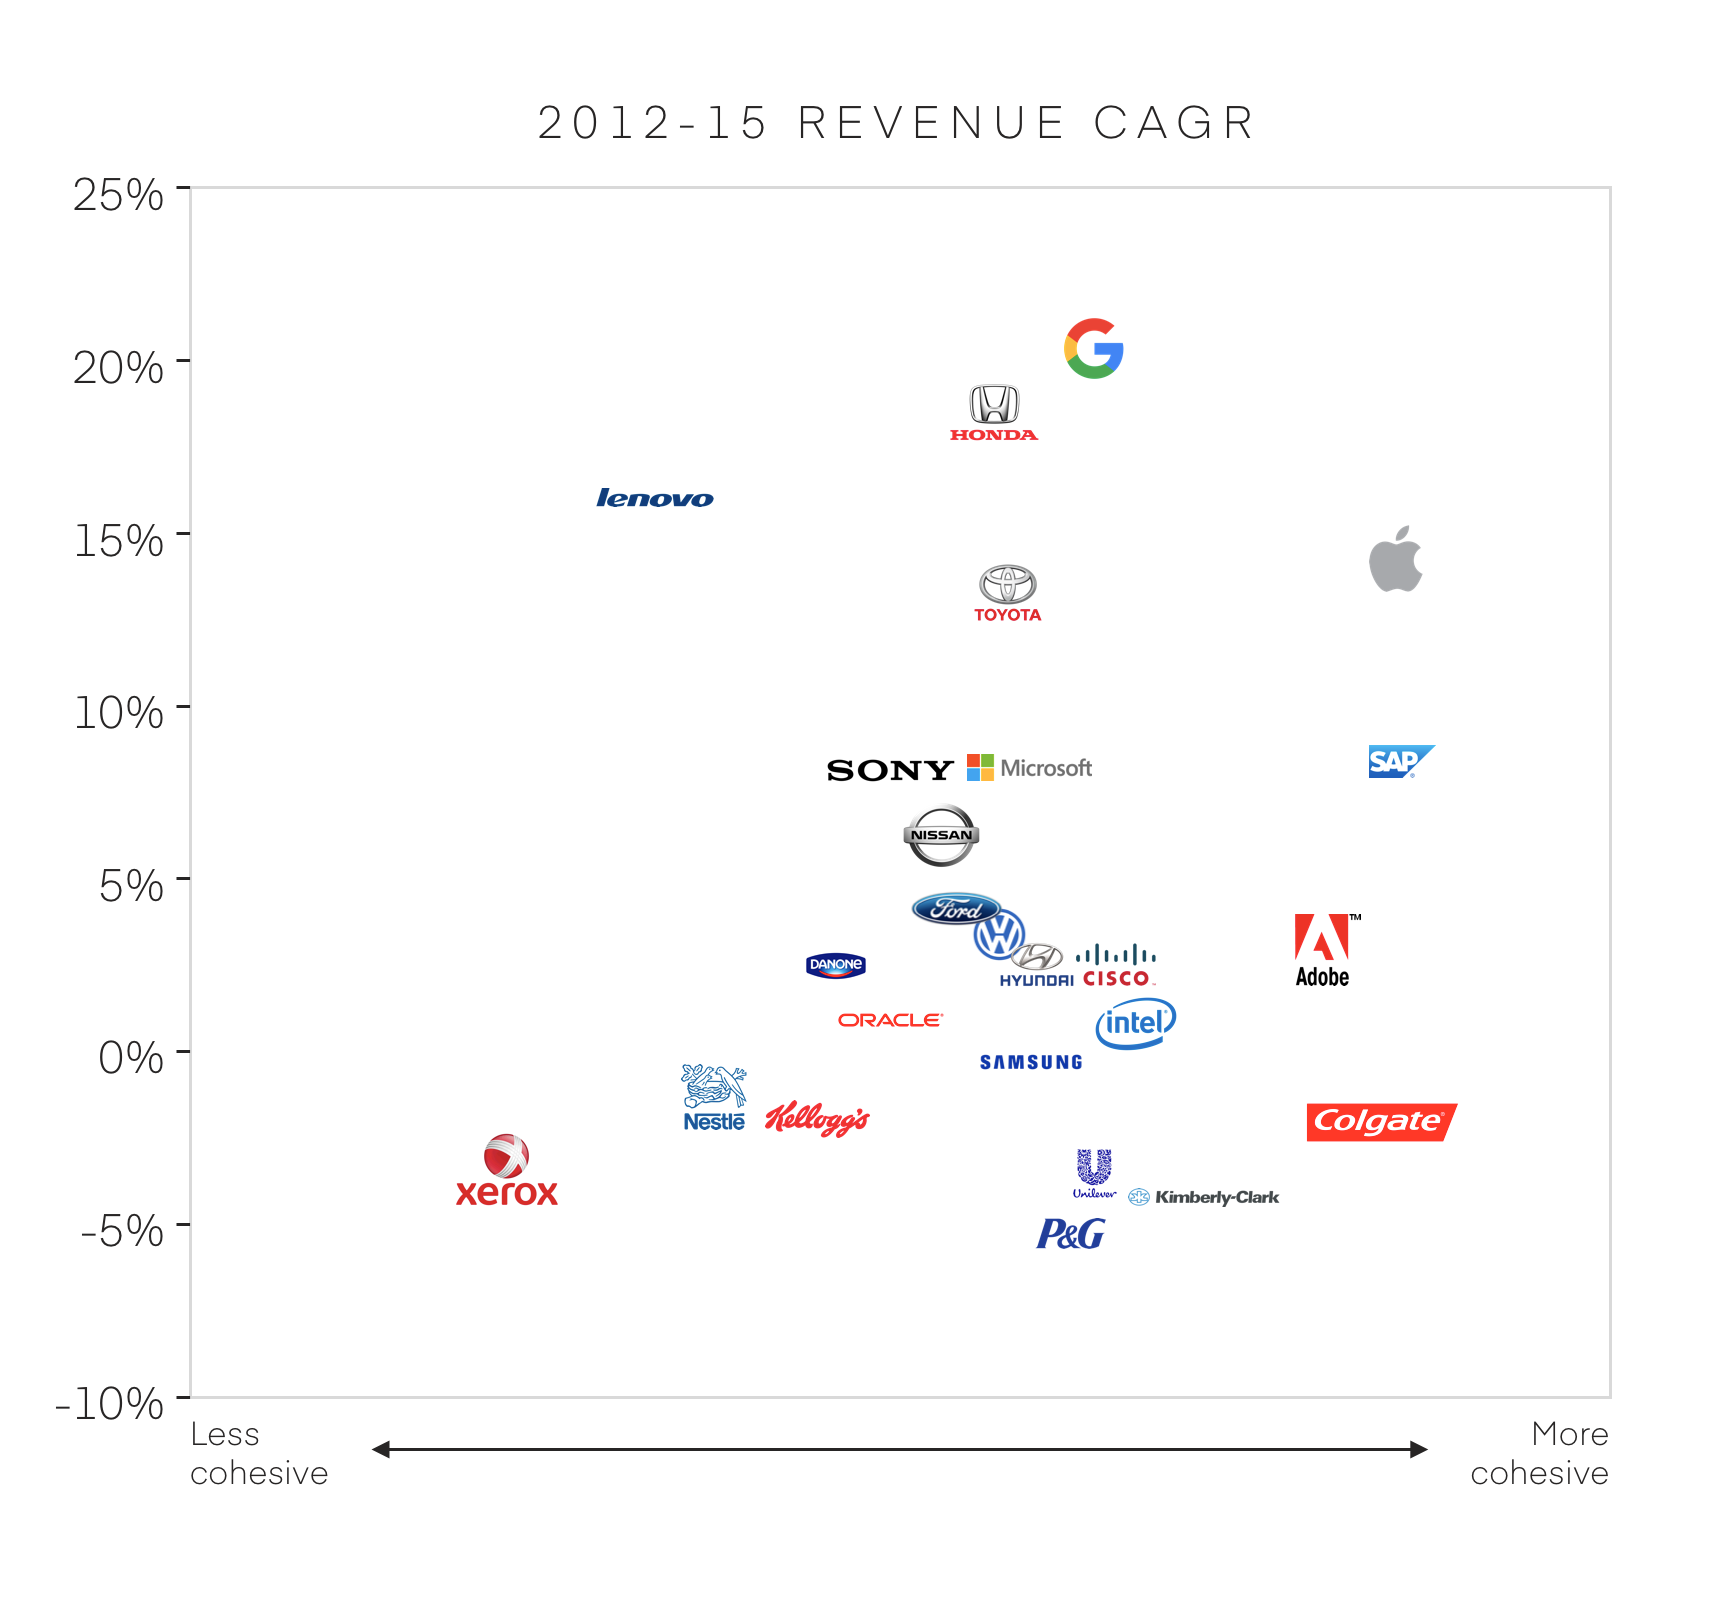 Revenue changes plotted against brand cohesiveness